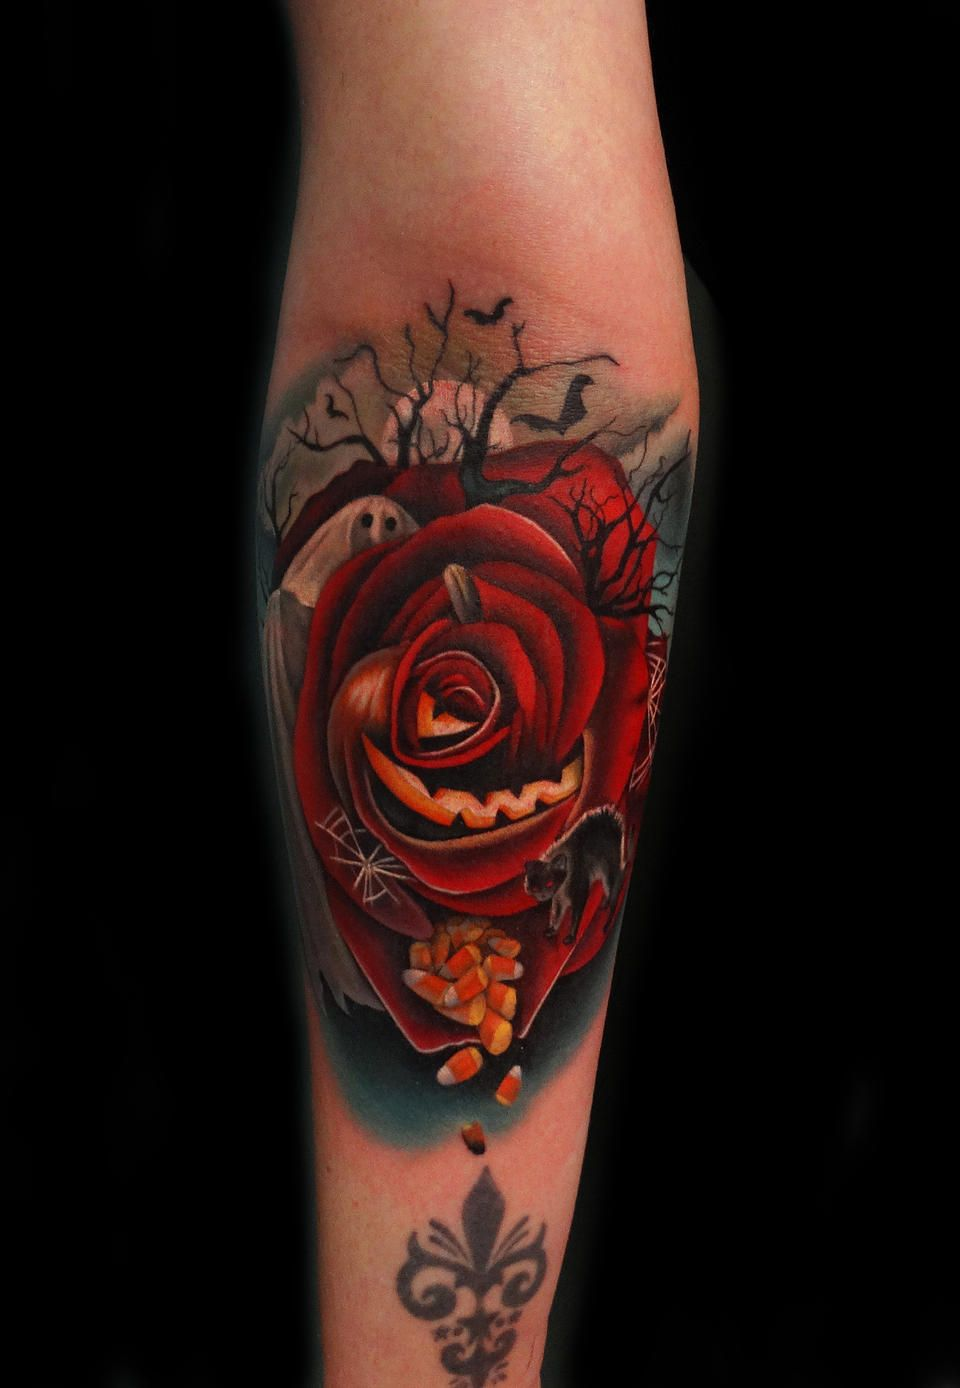 ef9c87ed726 Halloween Rose Tattoo by Andrés Acosta | Tattoo Artist - Andres ...